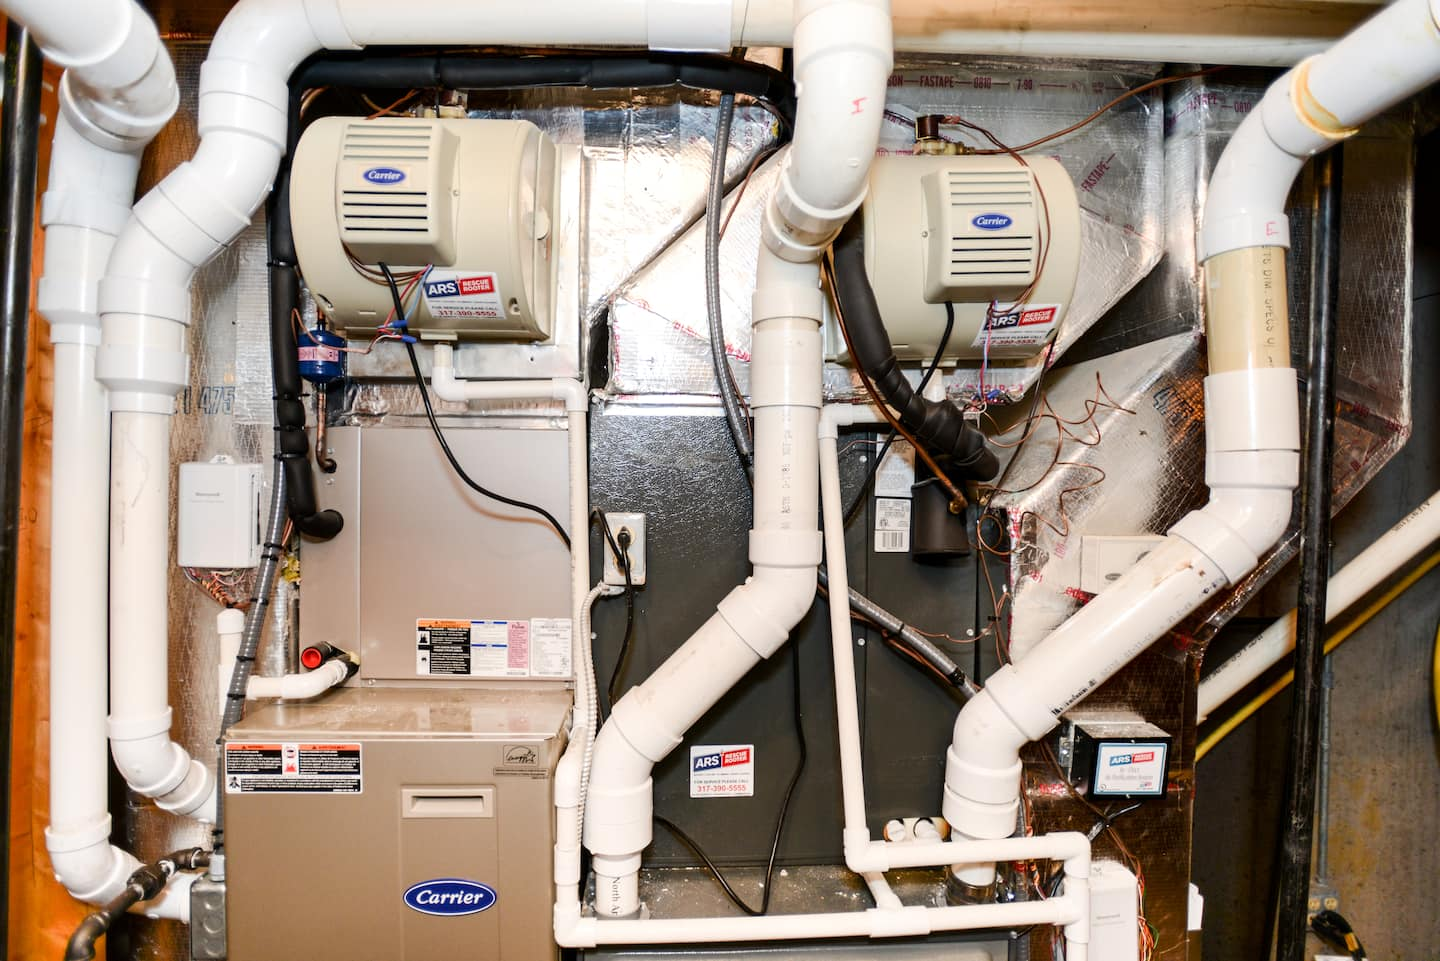 Average cost of new furnace and ac for home - Average Cost Of New Furnace And Ac For Home 1